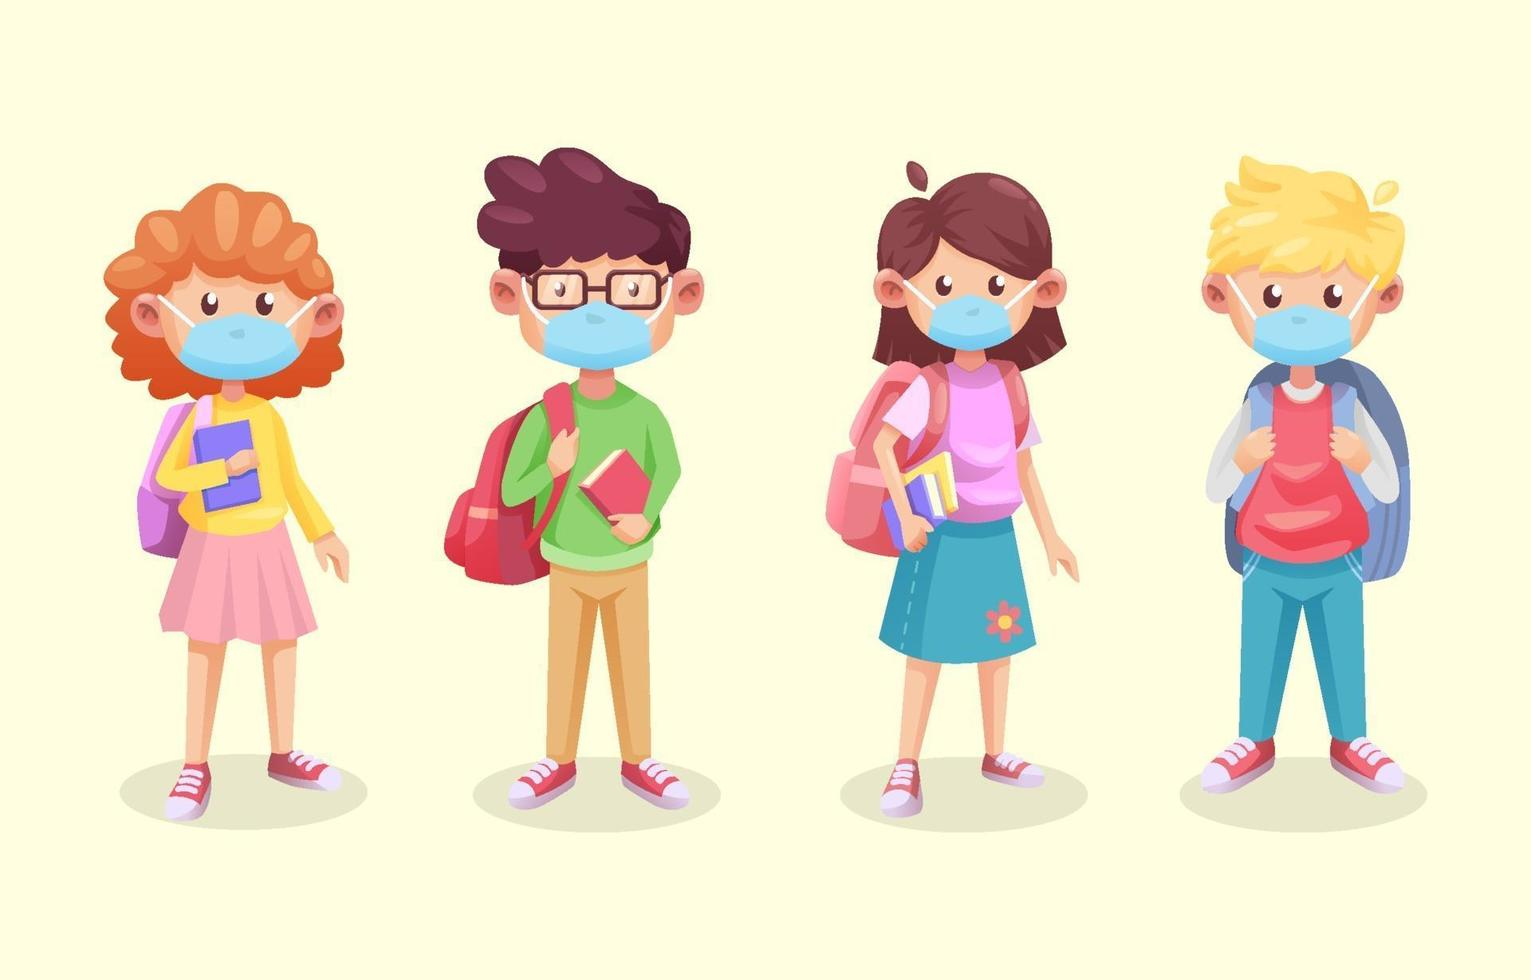 Students in New Normal Protocol Character vector